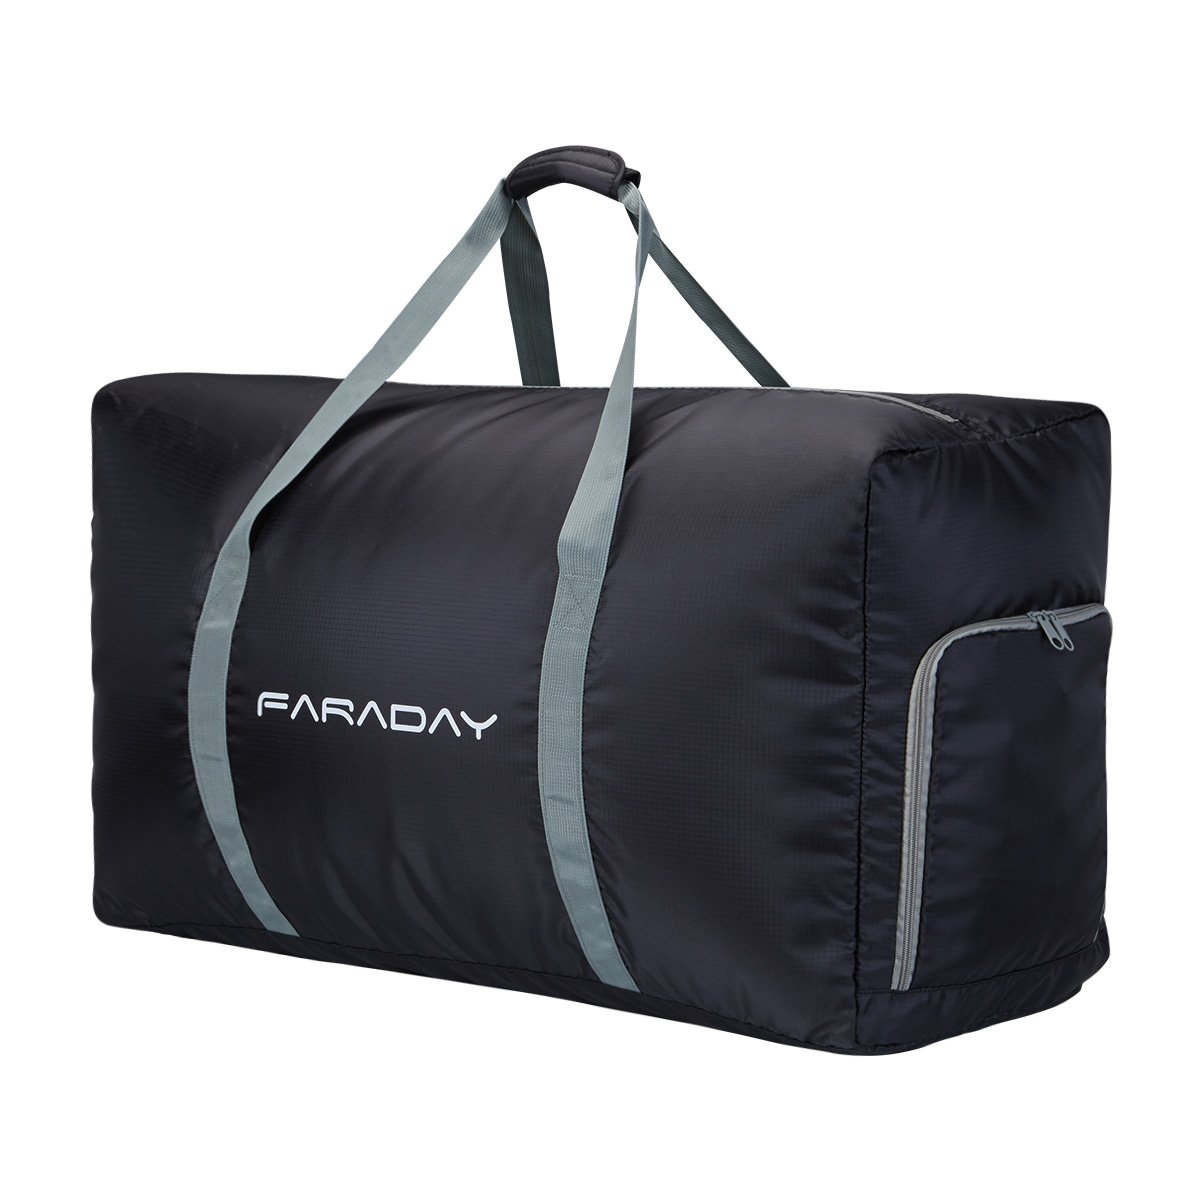 Foldable Travel Duffle Bag 120L with Extra Large and Lightweight for Luggage Gym Sports (Black)